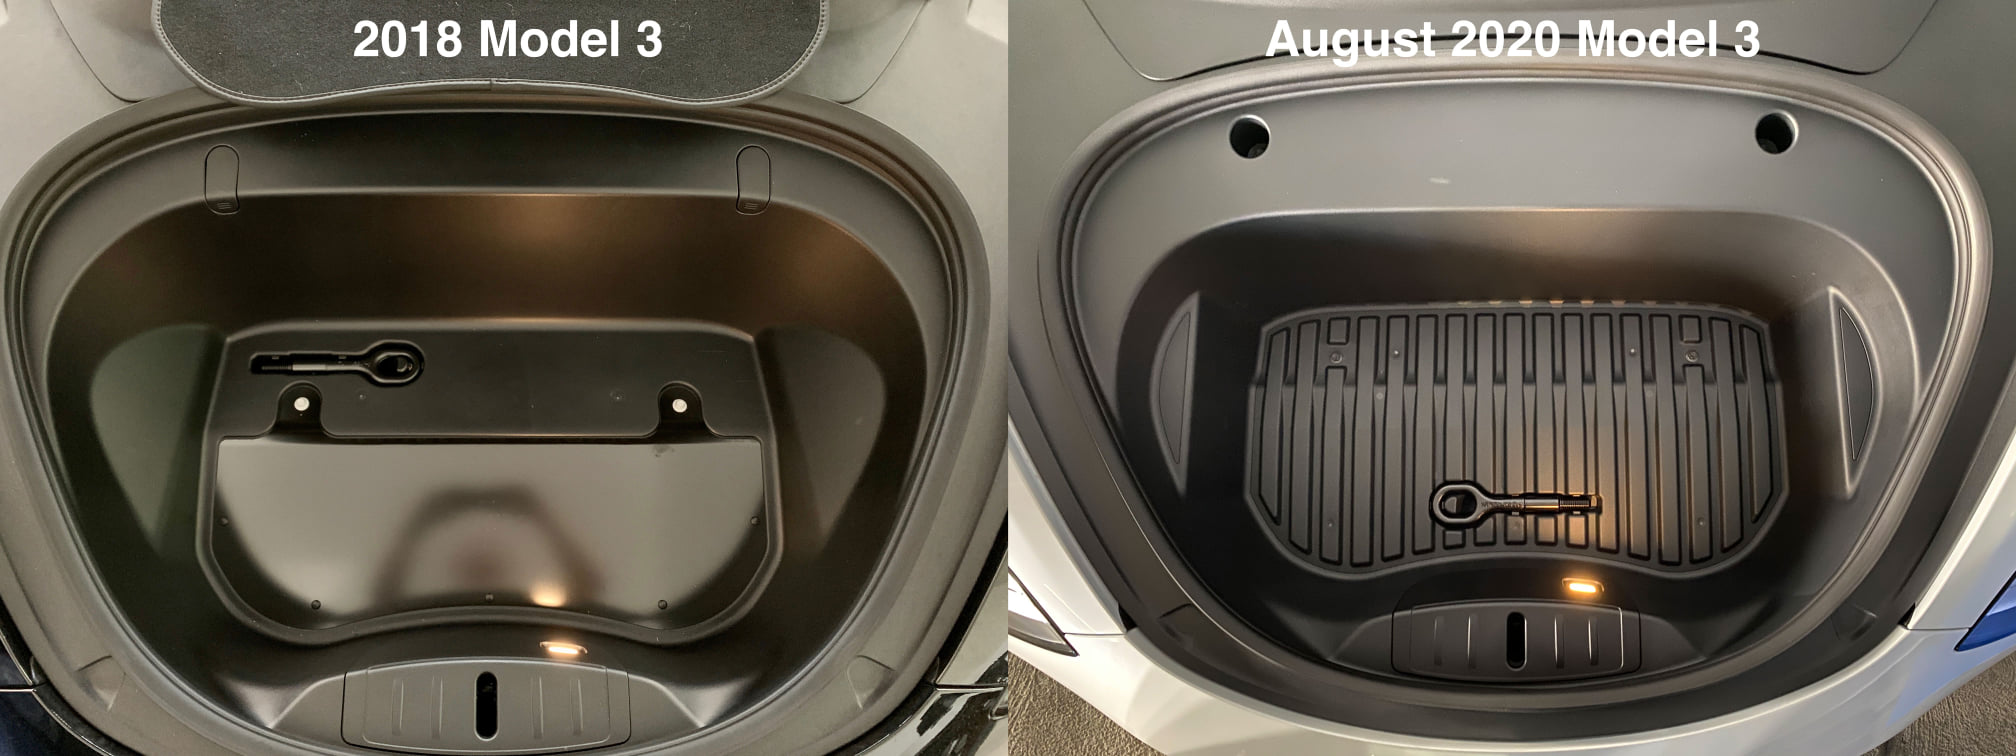 Old vs new Model 3 frunk